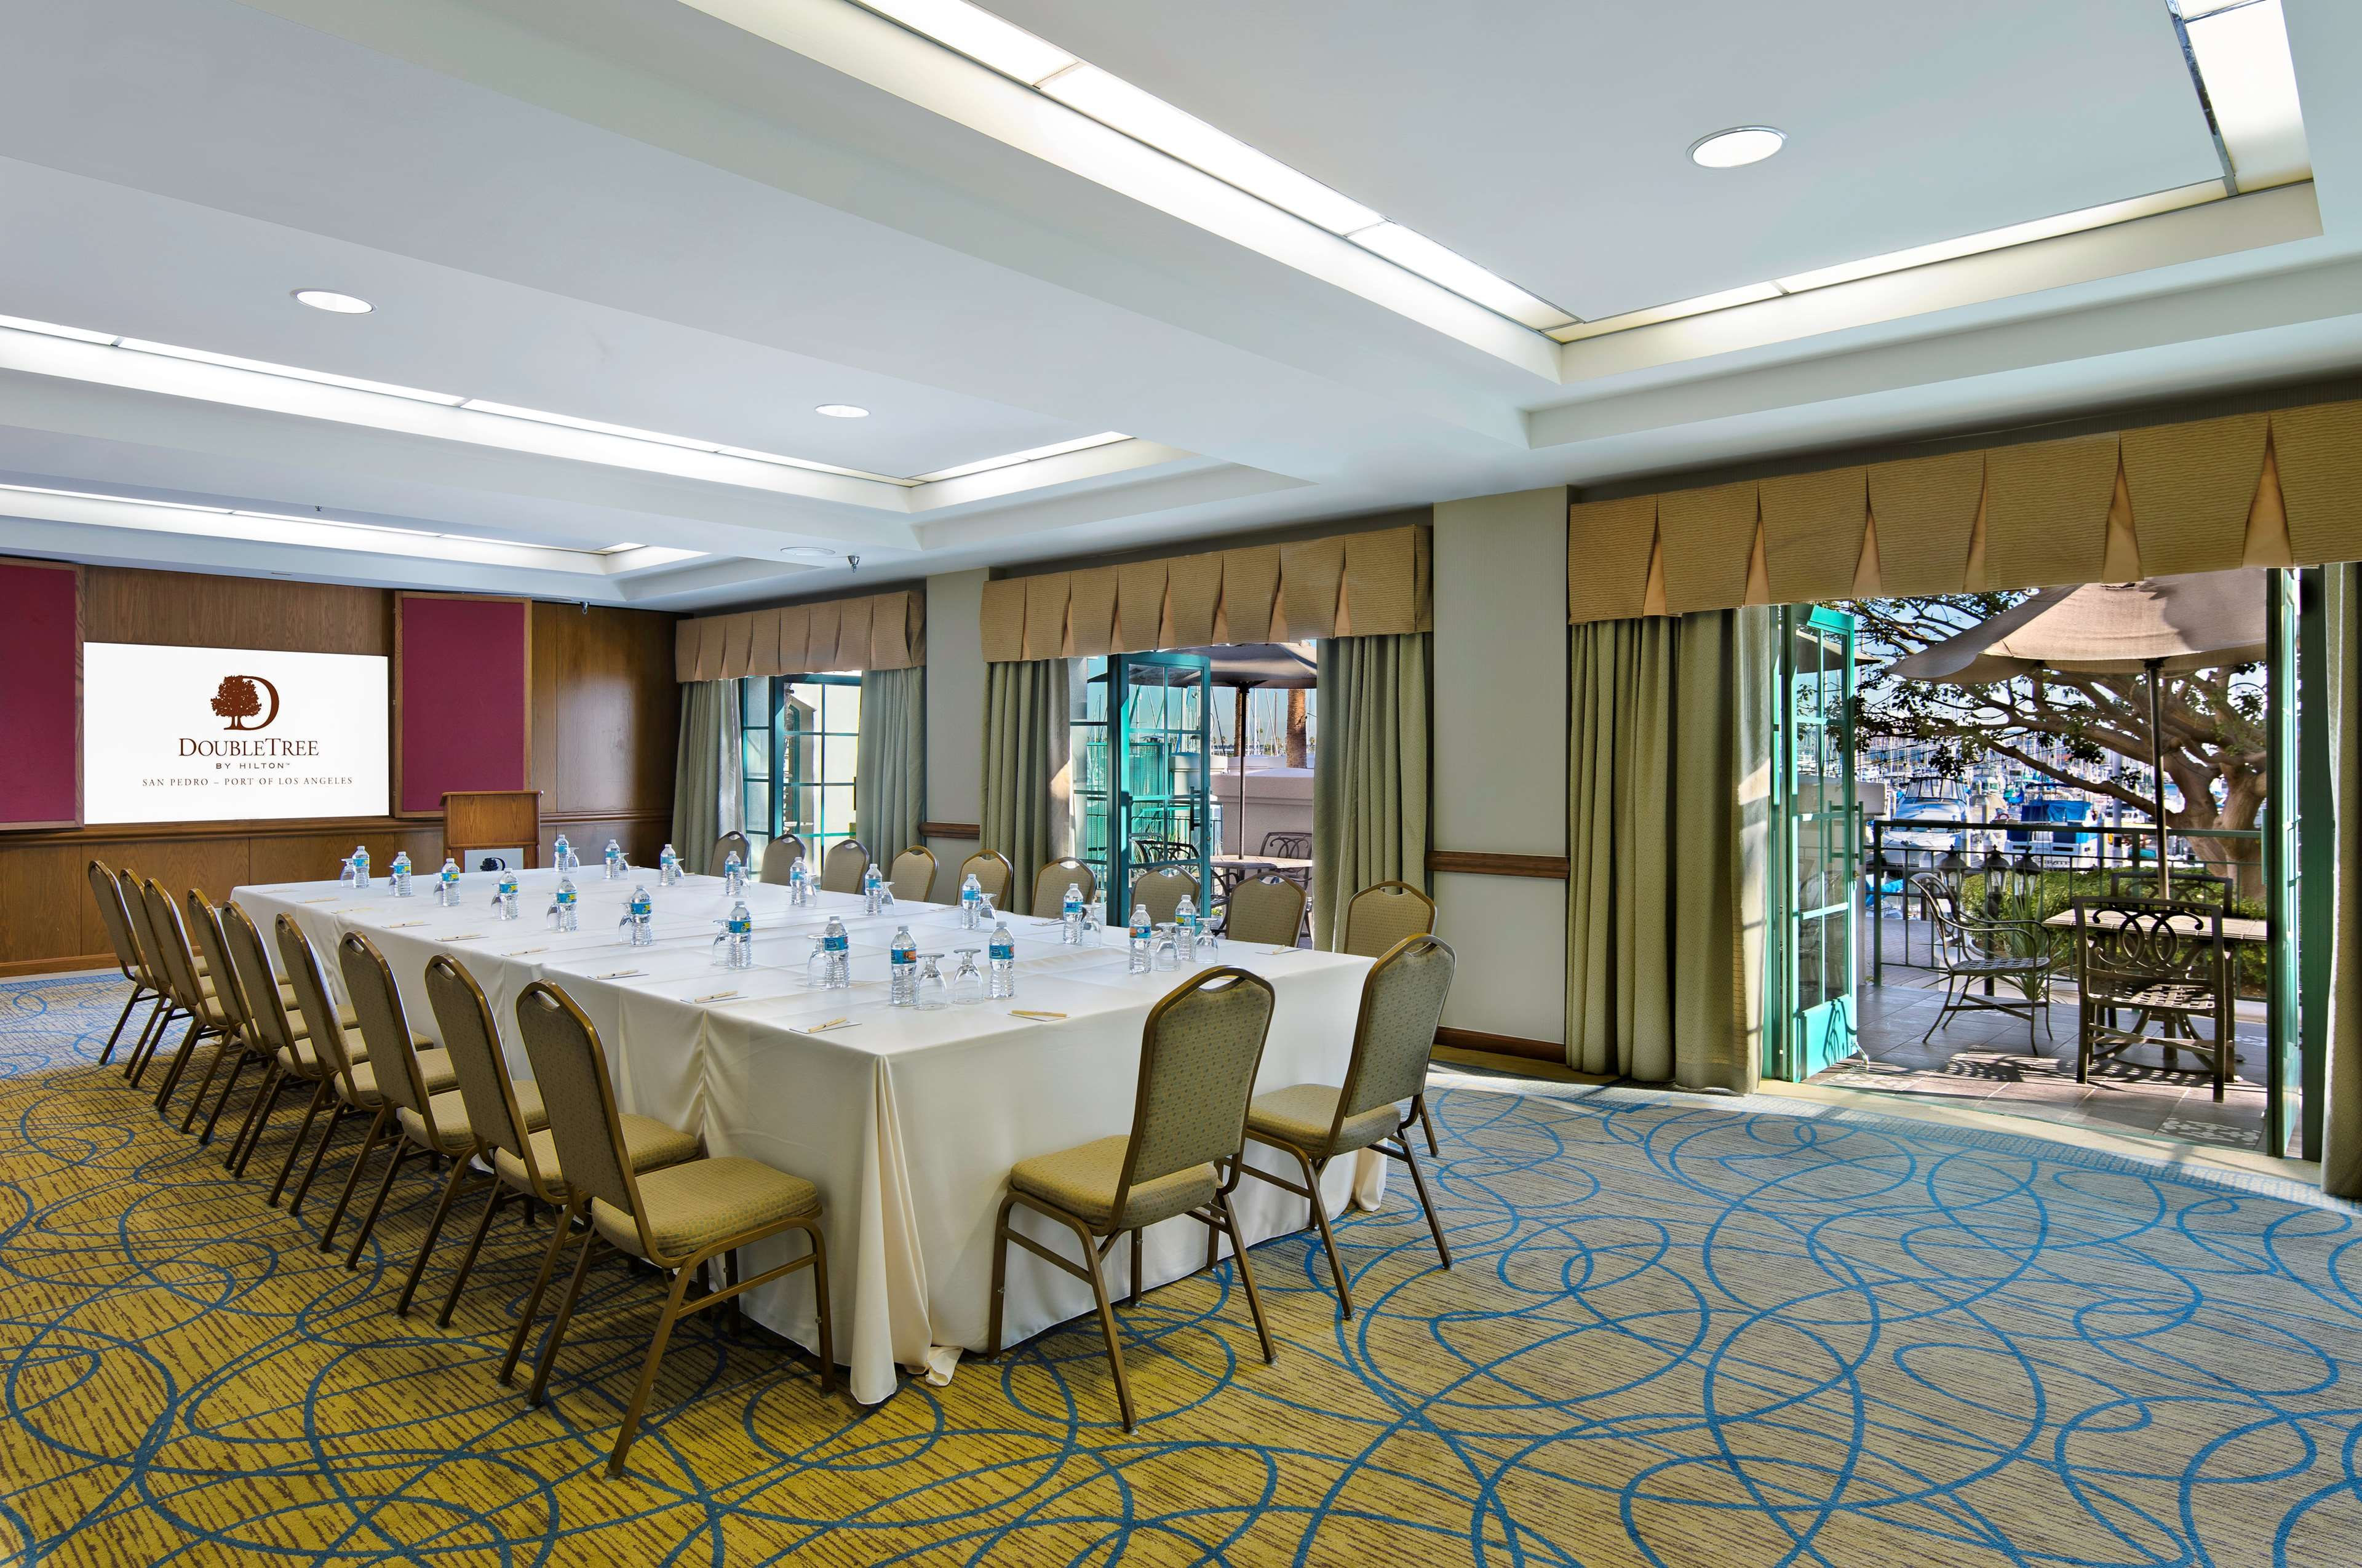 DoubleTree by Hilton Hotel San Pedro - Port of Los Angeles image 33